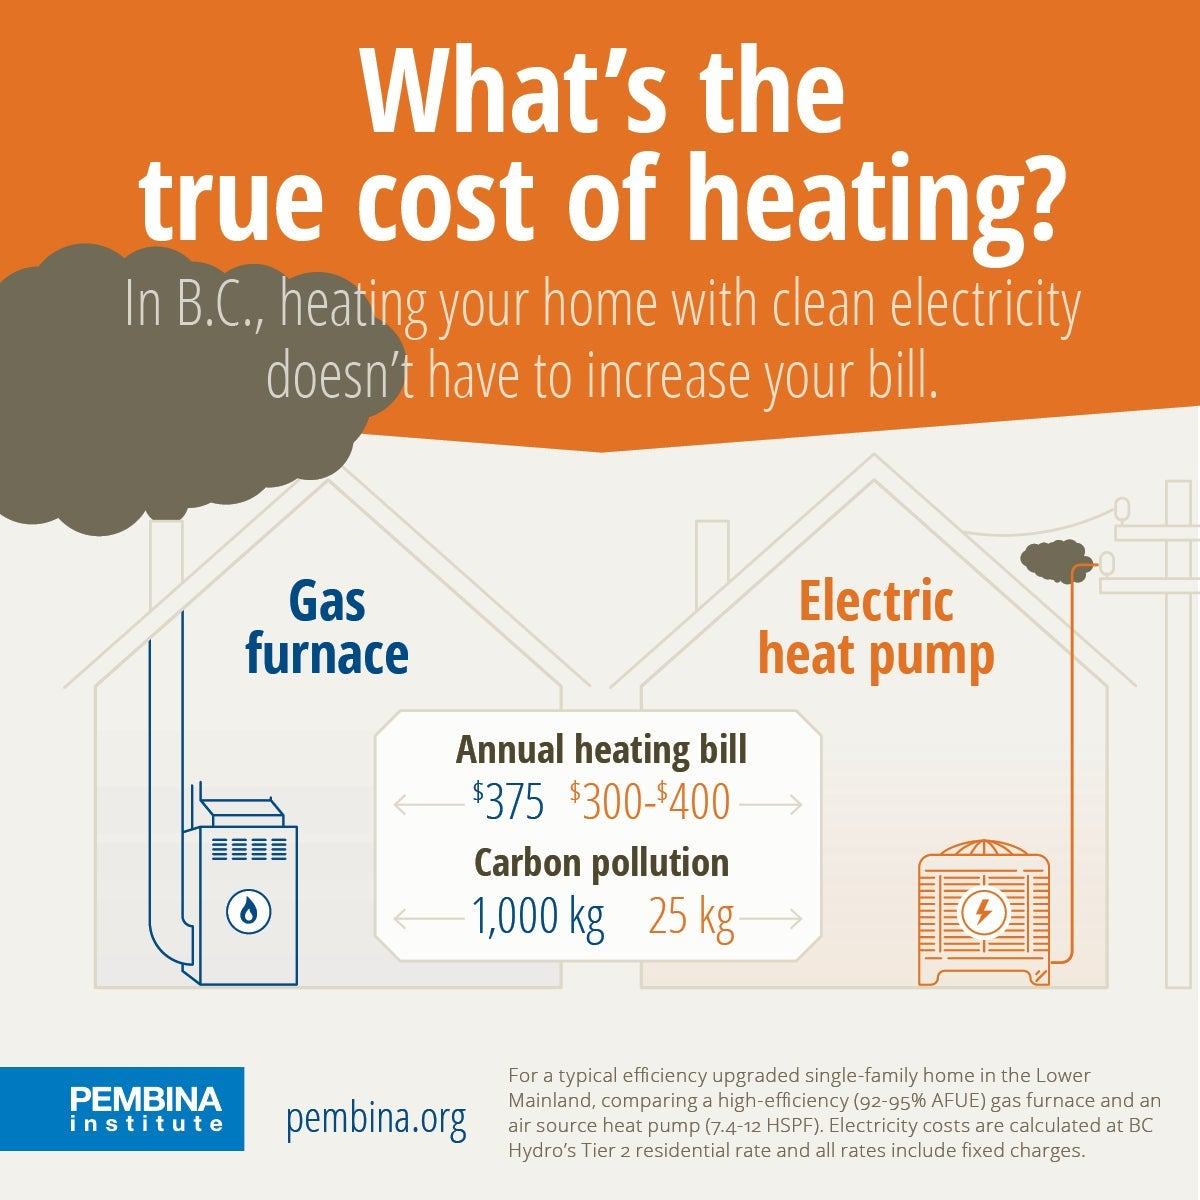 cost of home heating in b.c.? - june conway